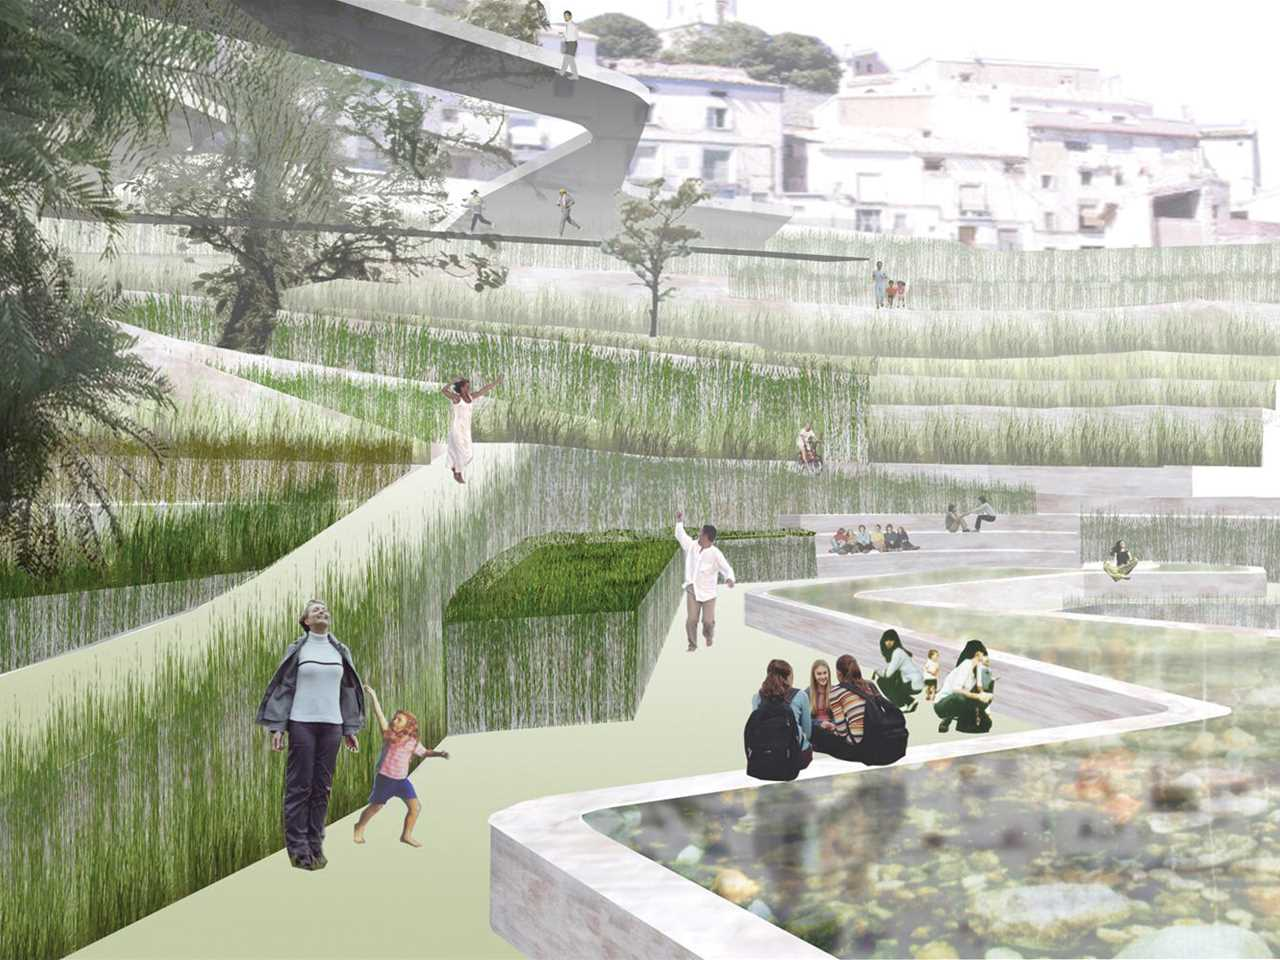 Holcim Awards Acknowledgement prize 2005 Europe: The mysterious story of the garden that …